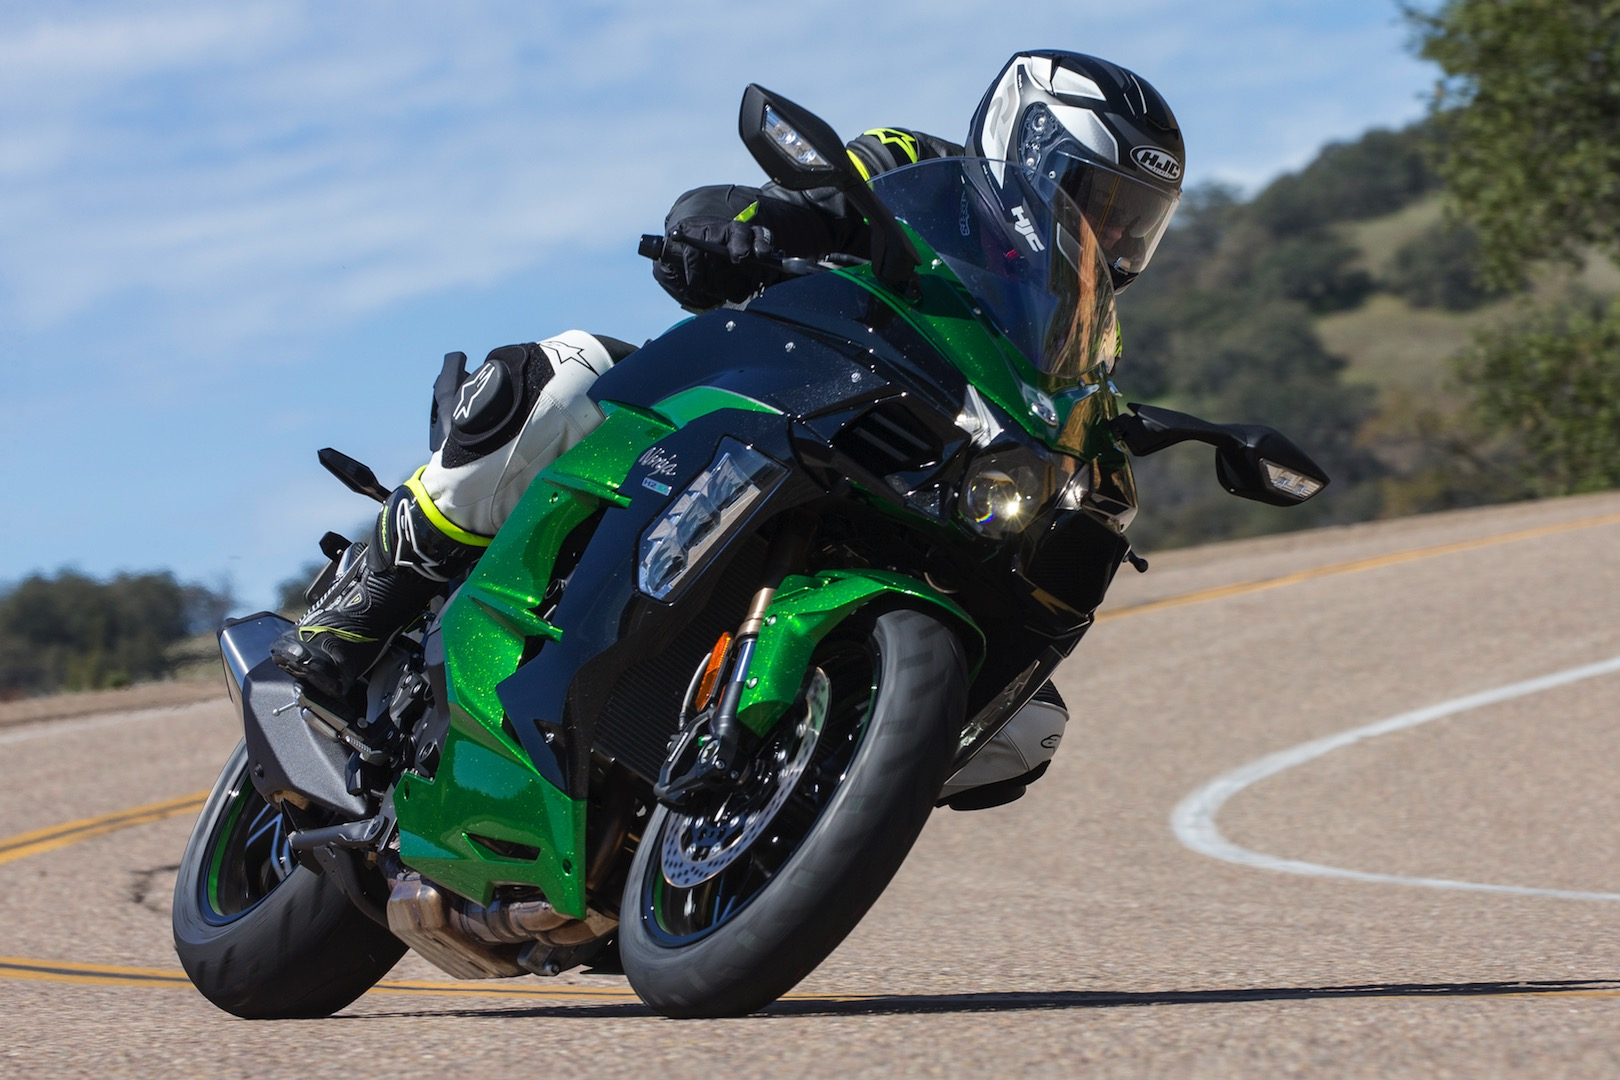 2018 Kawasaki Ninja H2 Sx Se Review 24 Fast Facts